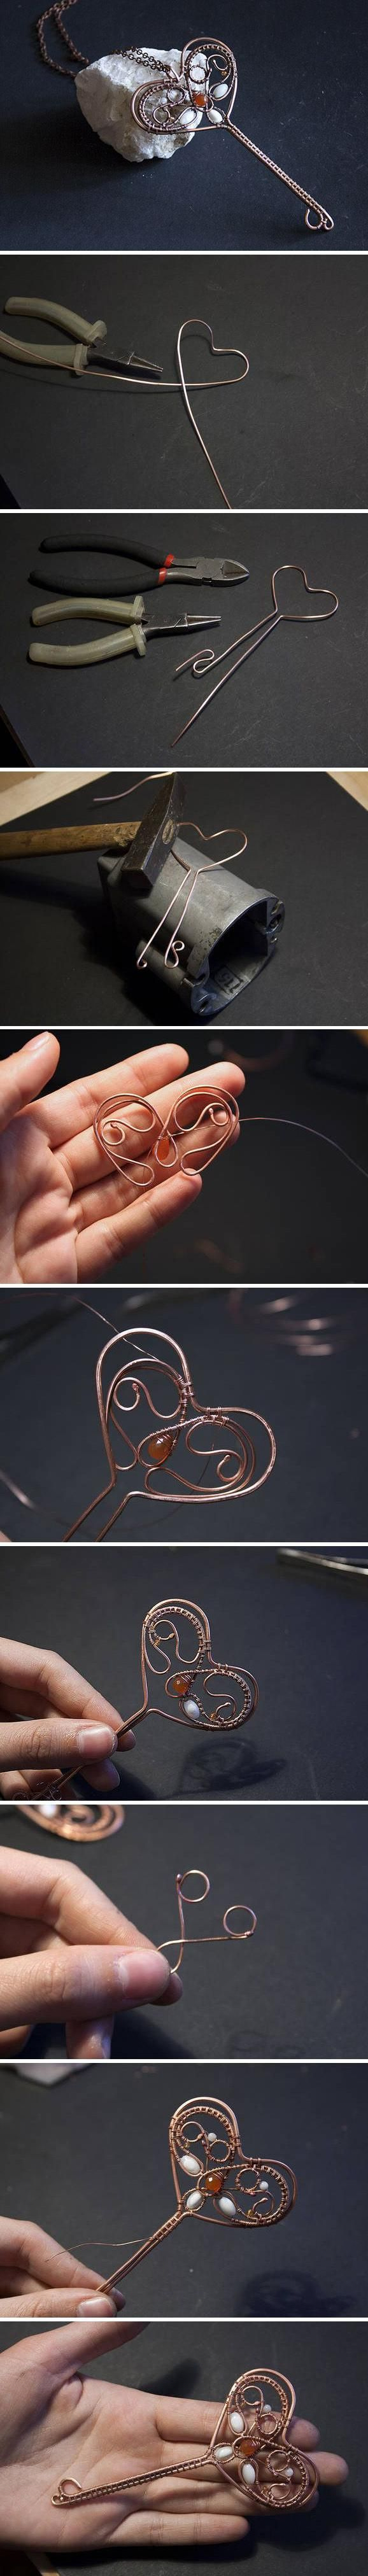 Wire Wrapped Heart Key Pendant Tutorial